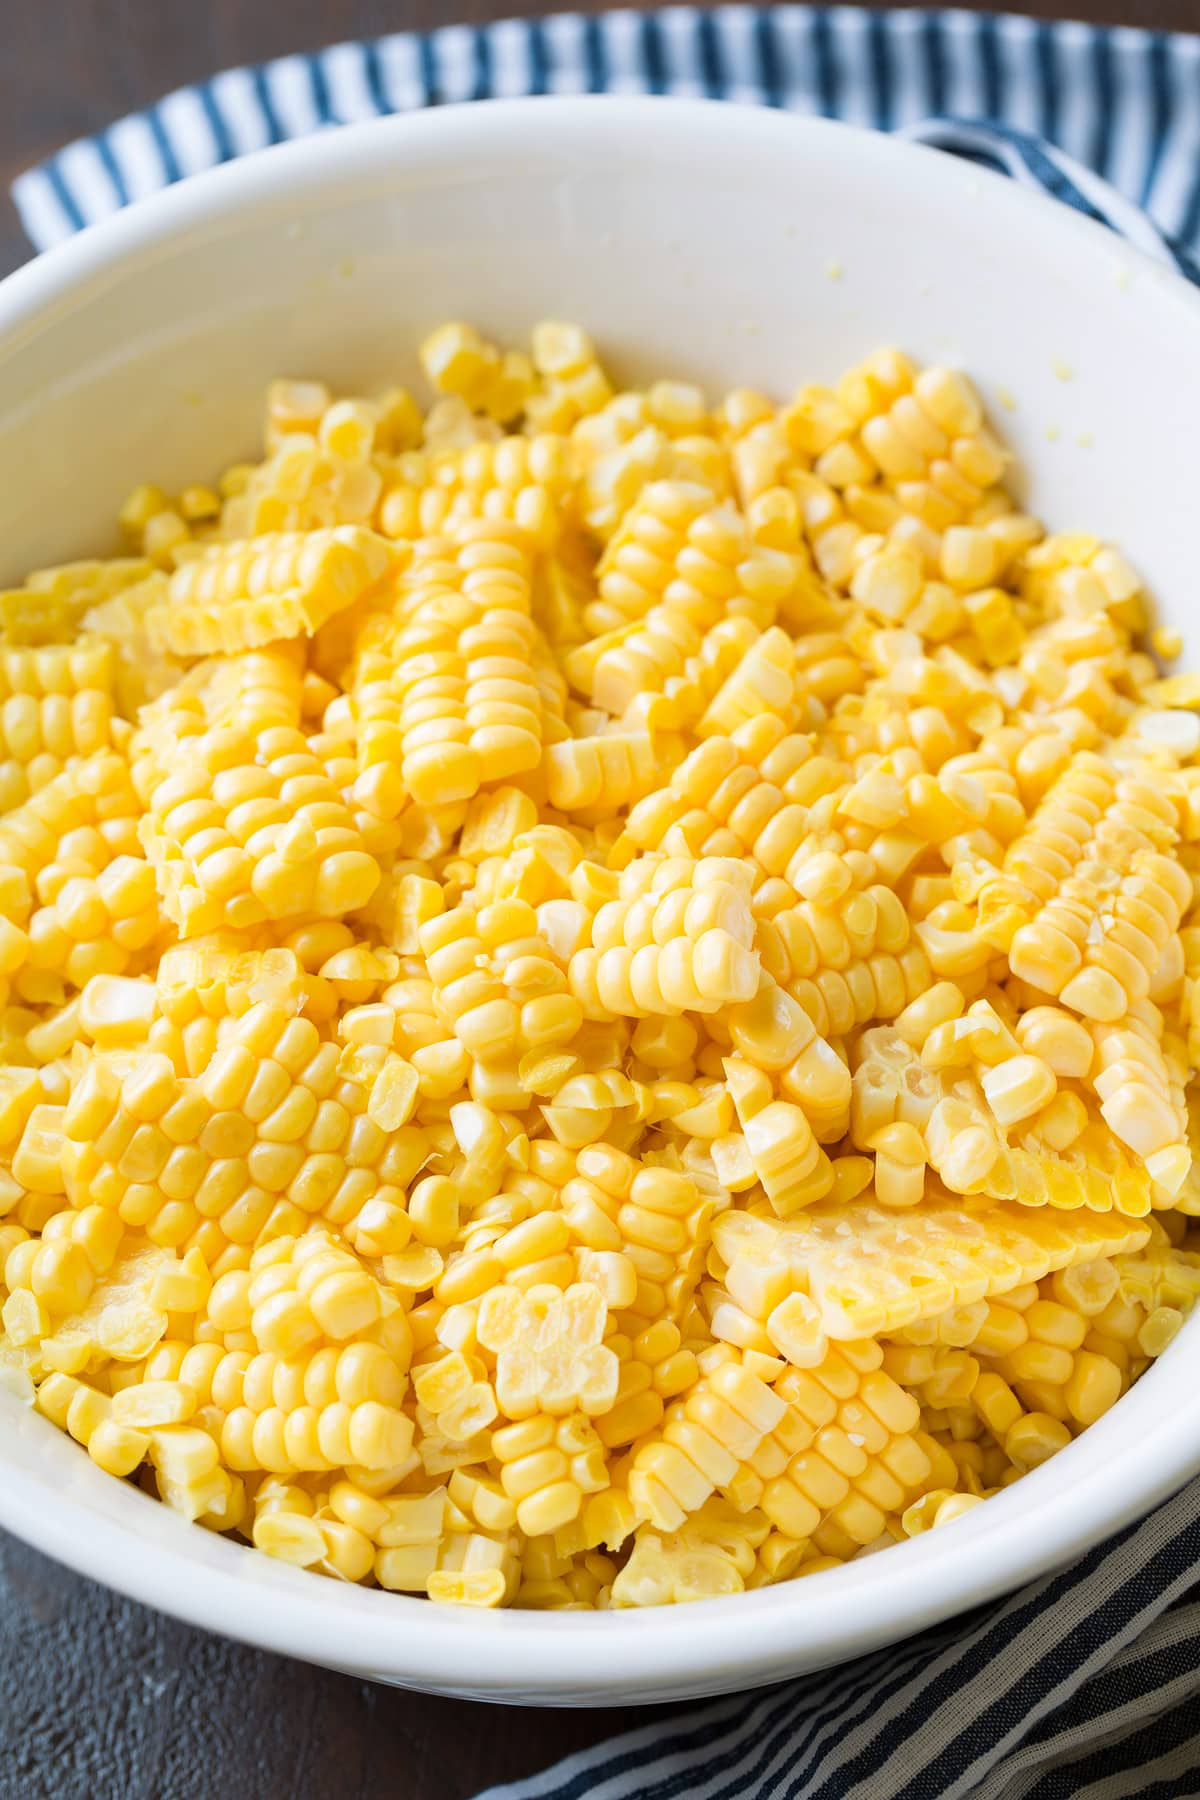 Bowl full of fresh corn kernels.